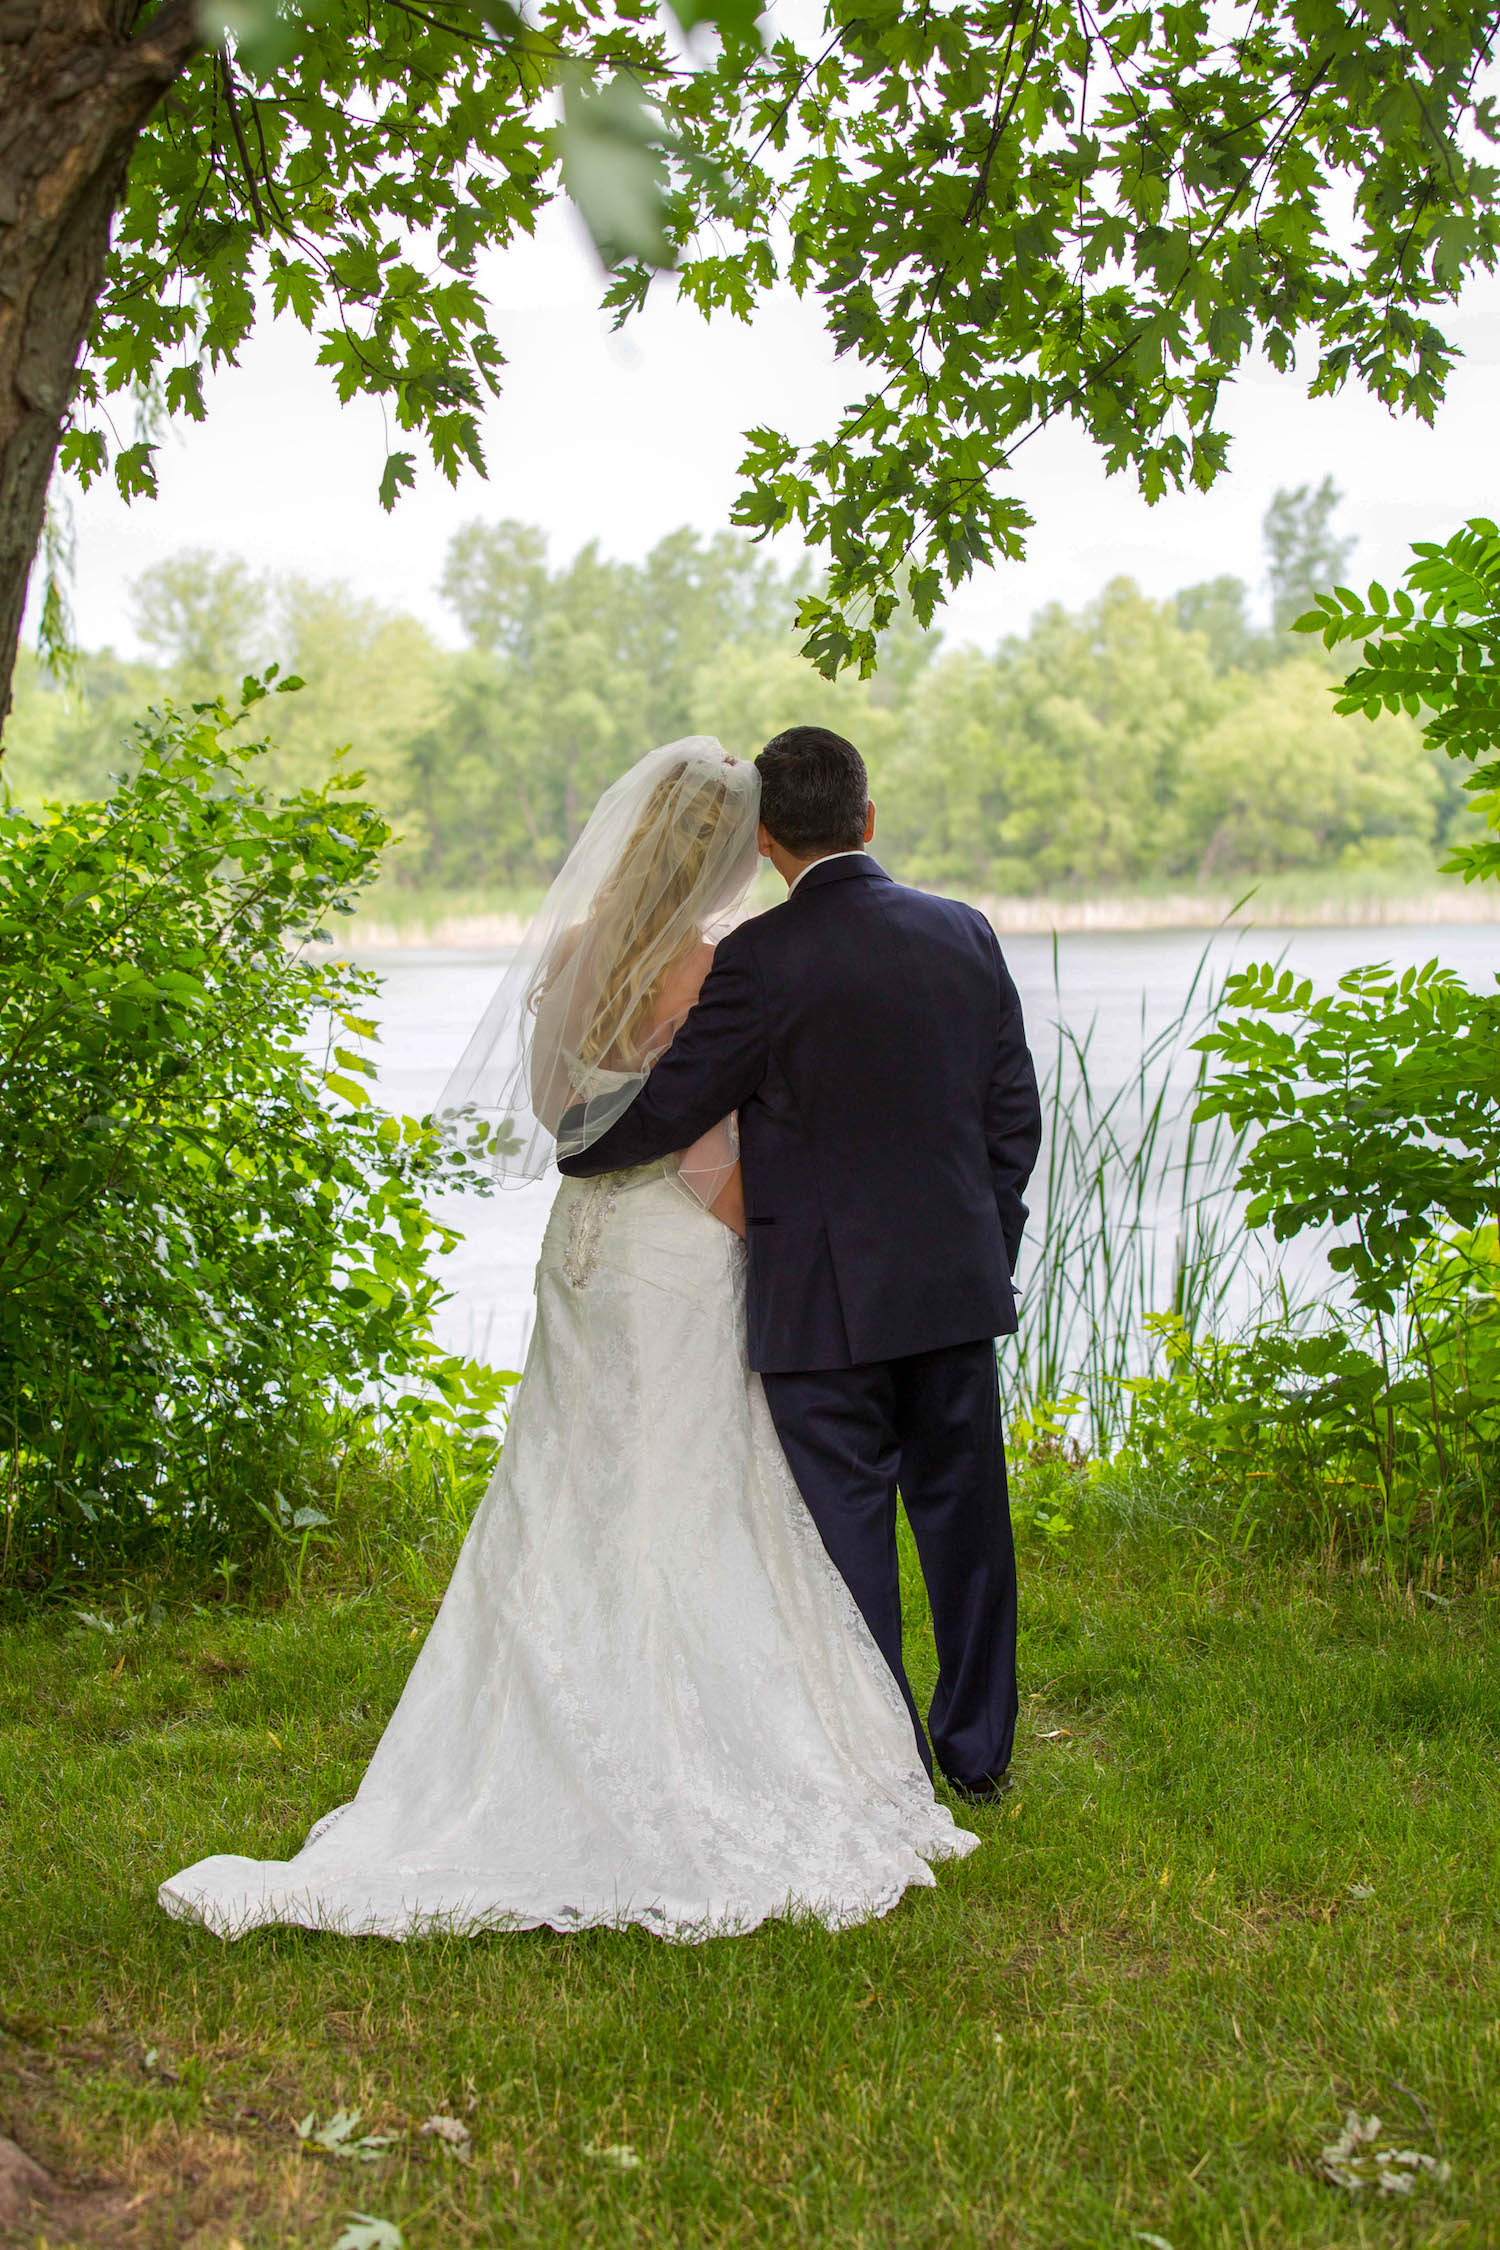 Cindyrellas Garden, outdoor lake ceremony in Minnesota,  overlooking the lake